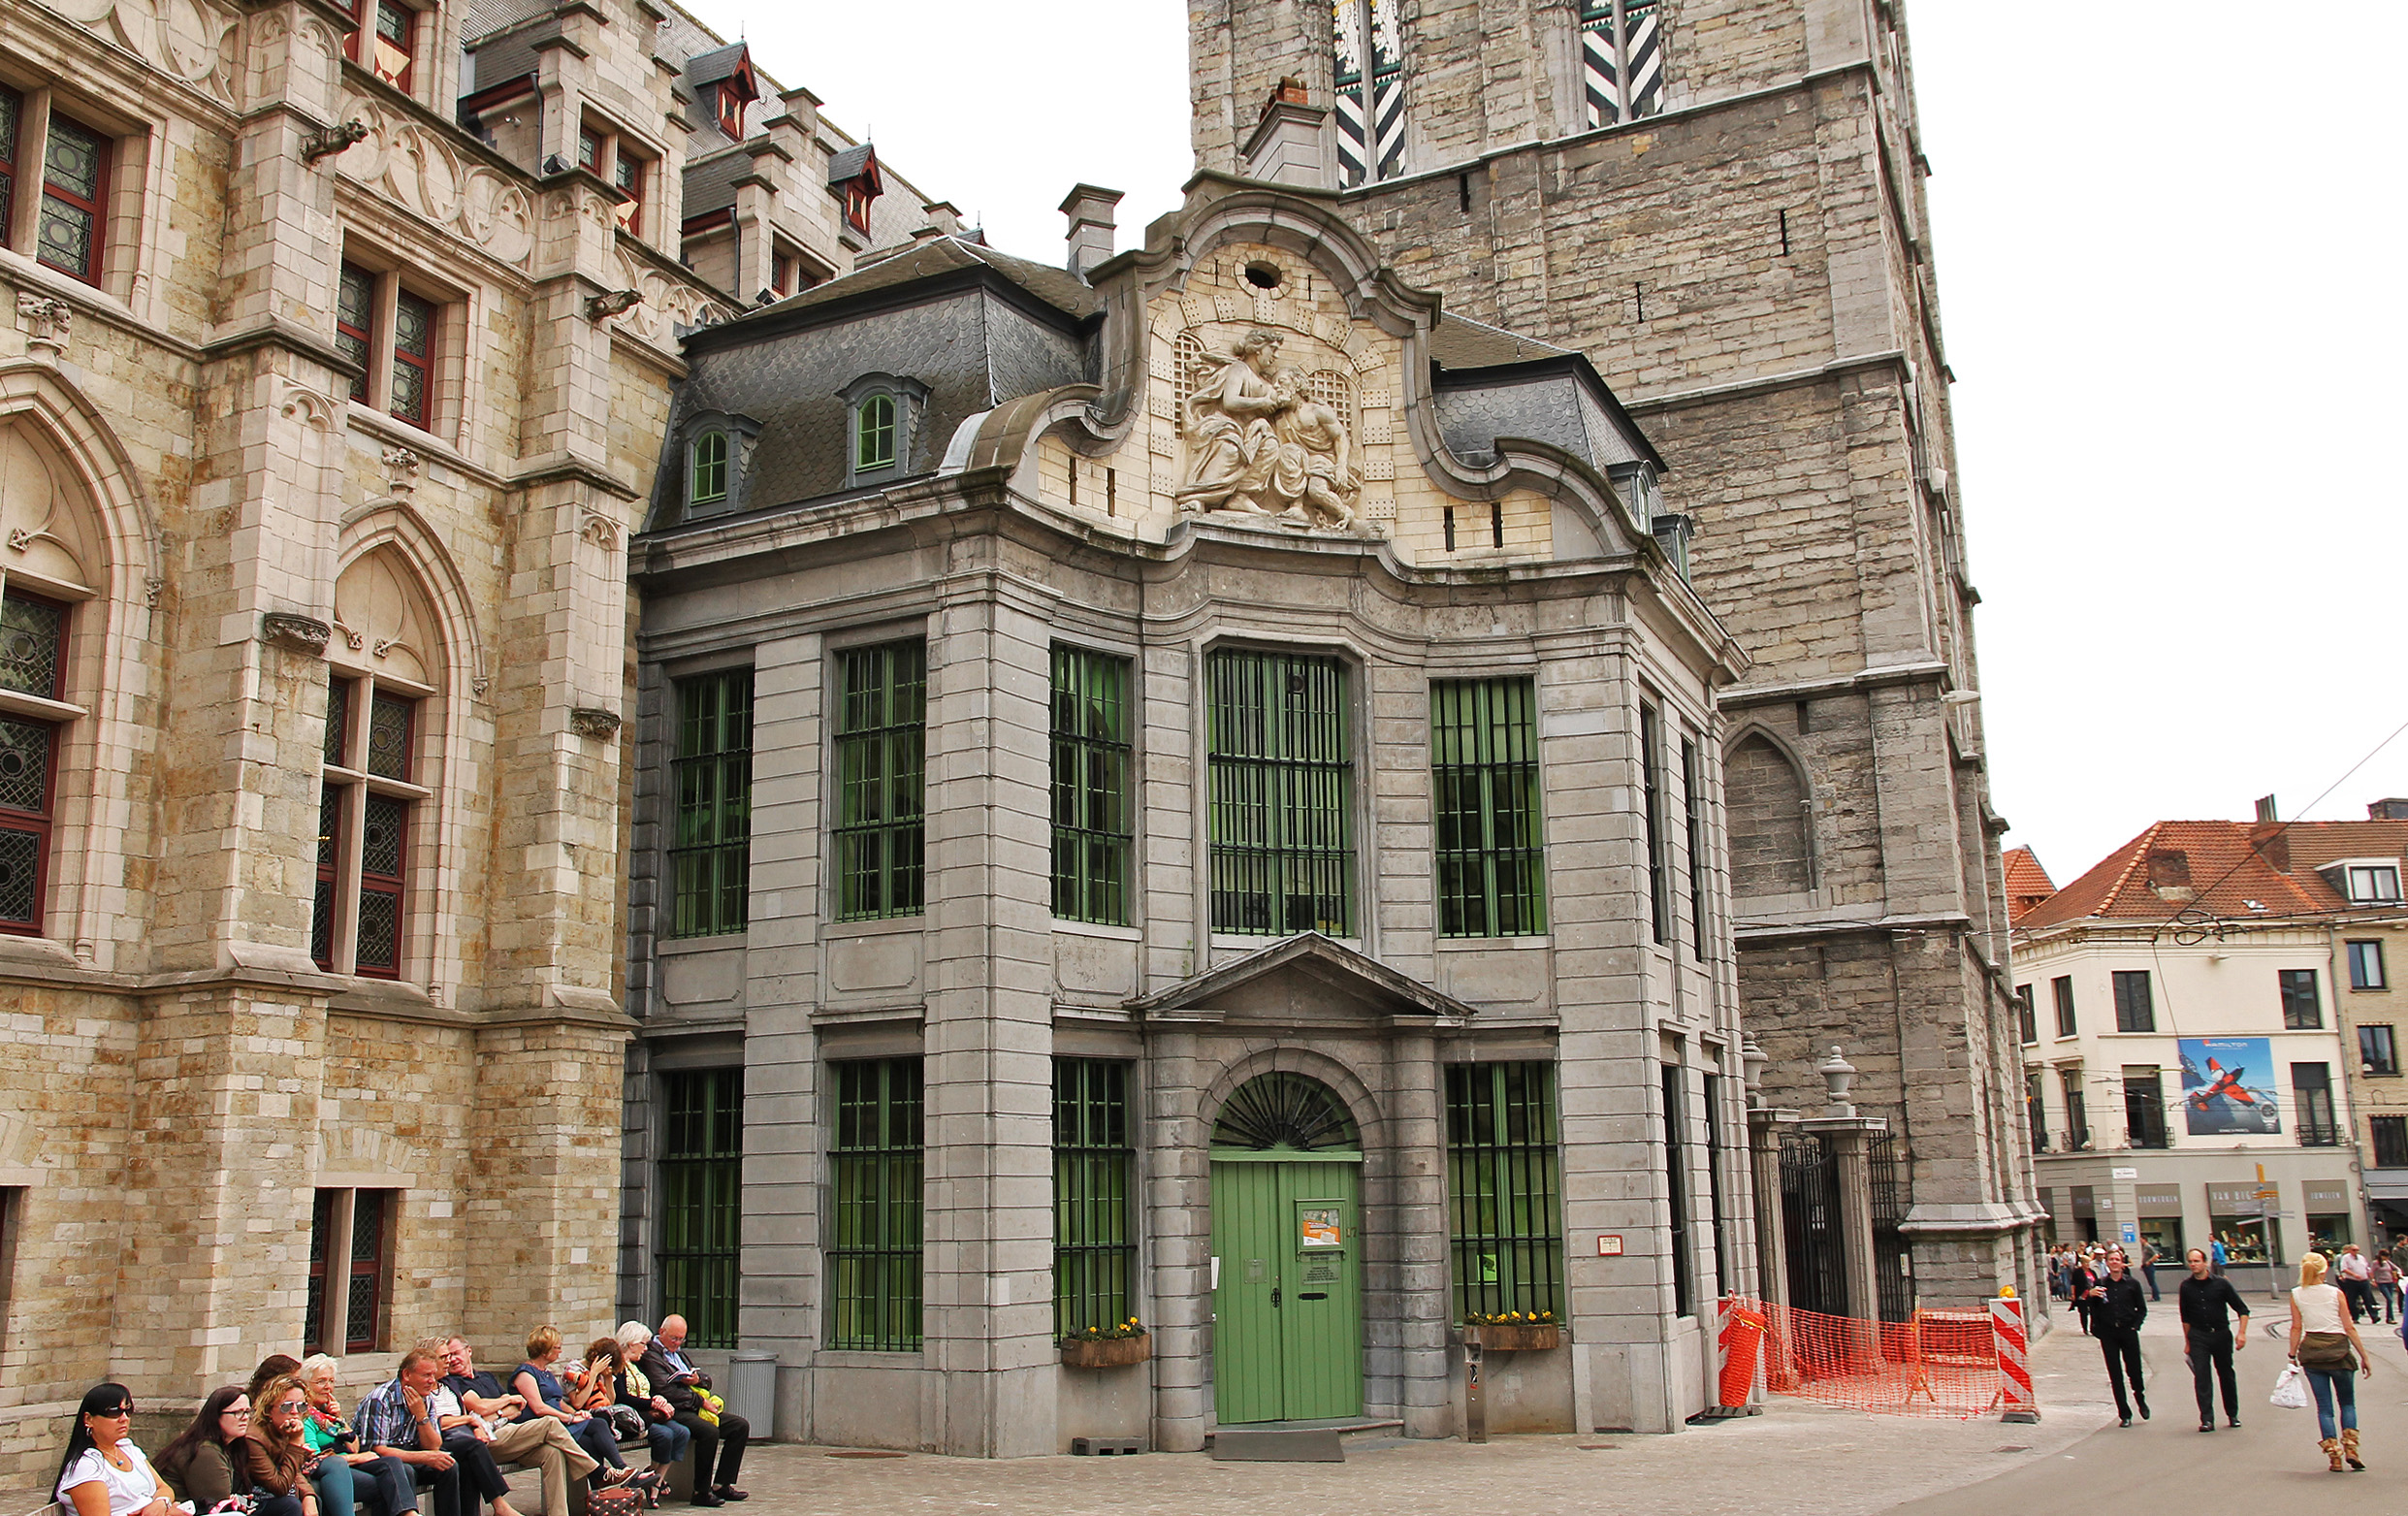 The Mammelokker: entrance to the 18th-century city jail and part of the world heritage of the belfry of Gent.